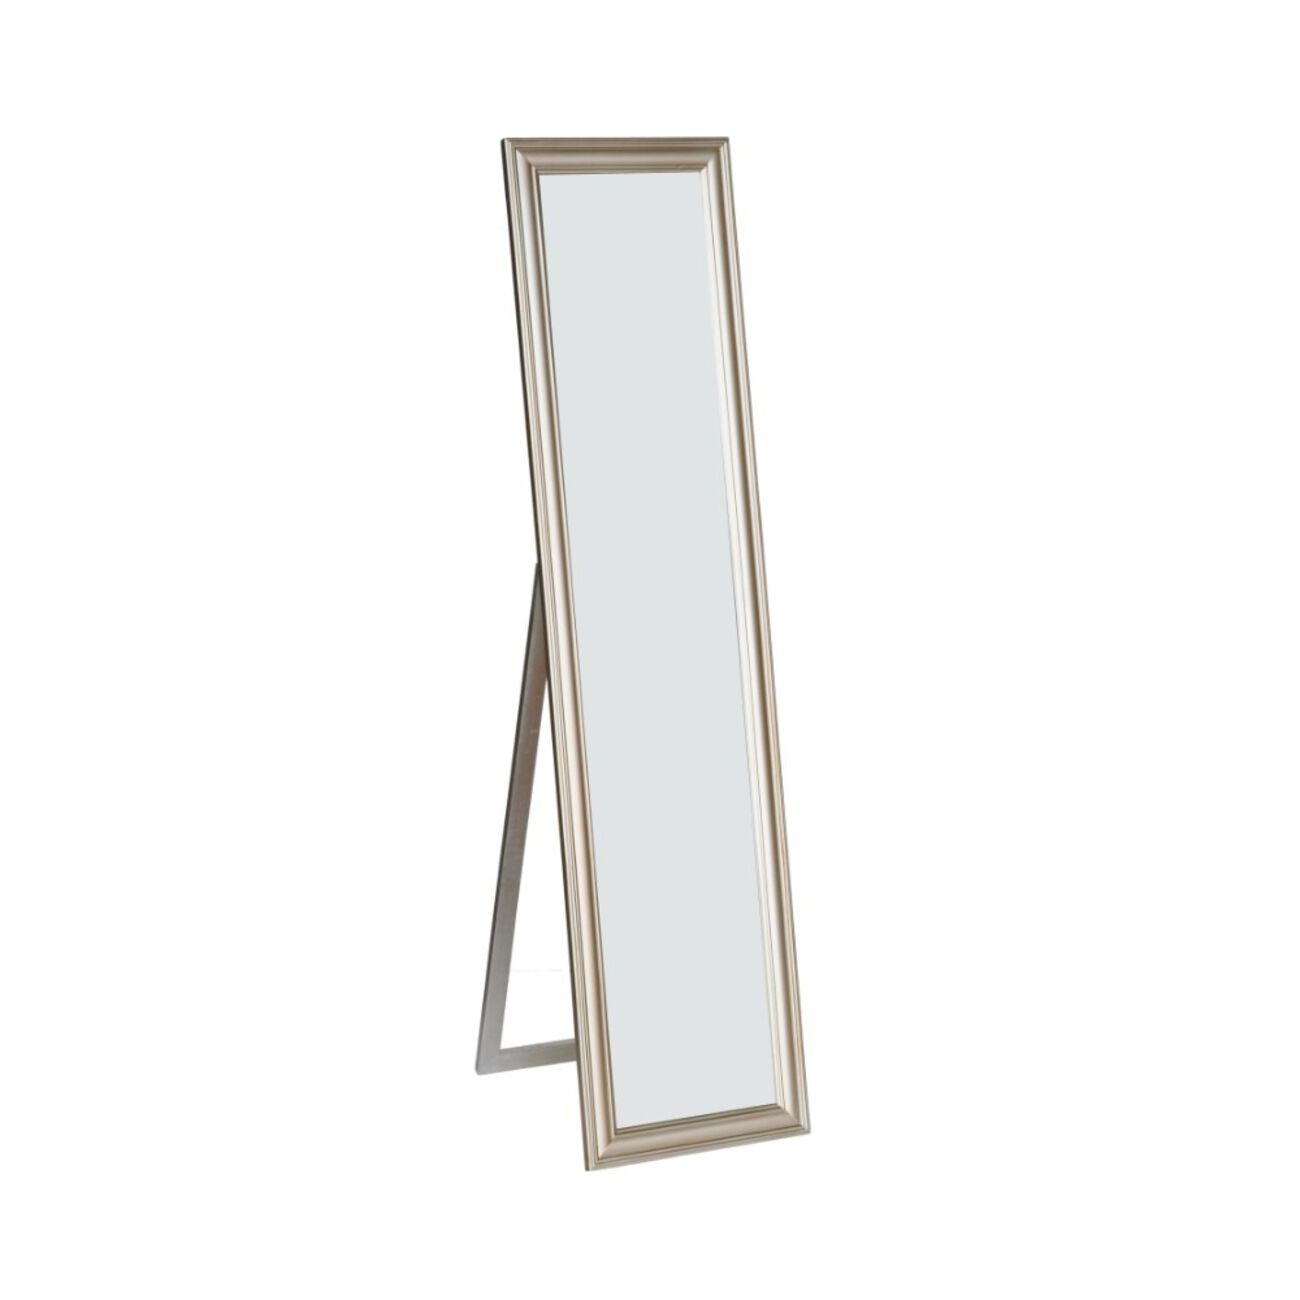 Standing Mirror withDecorative Design, Champagne Gold